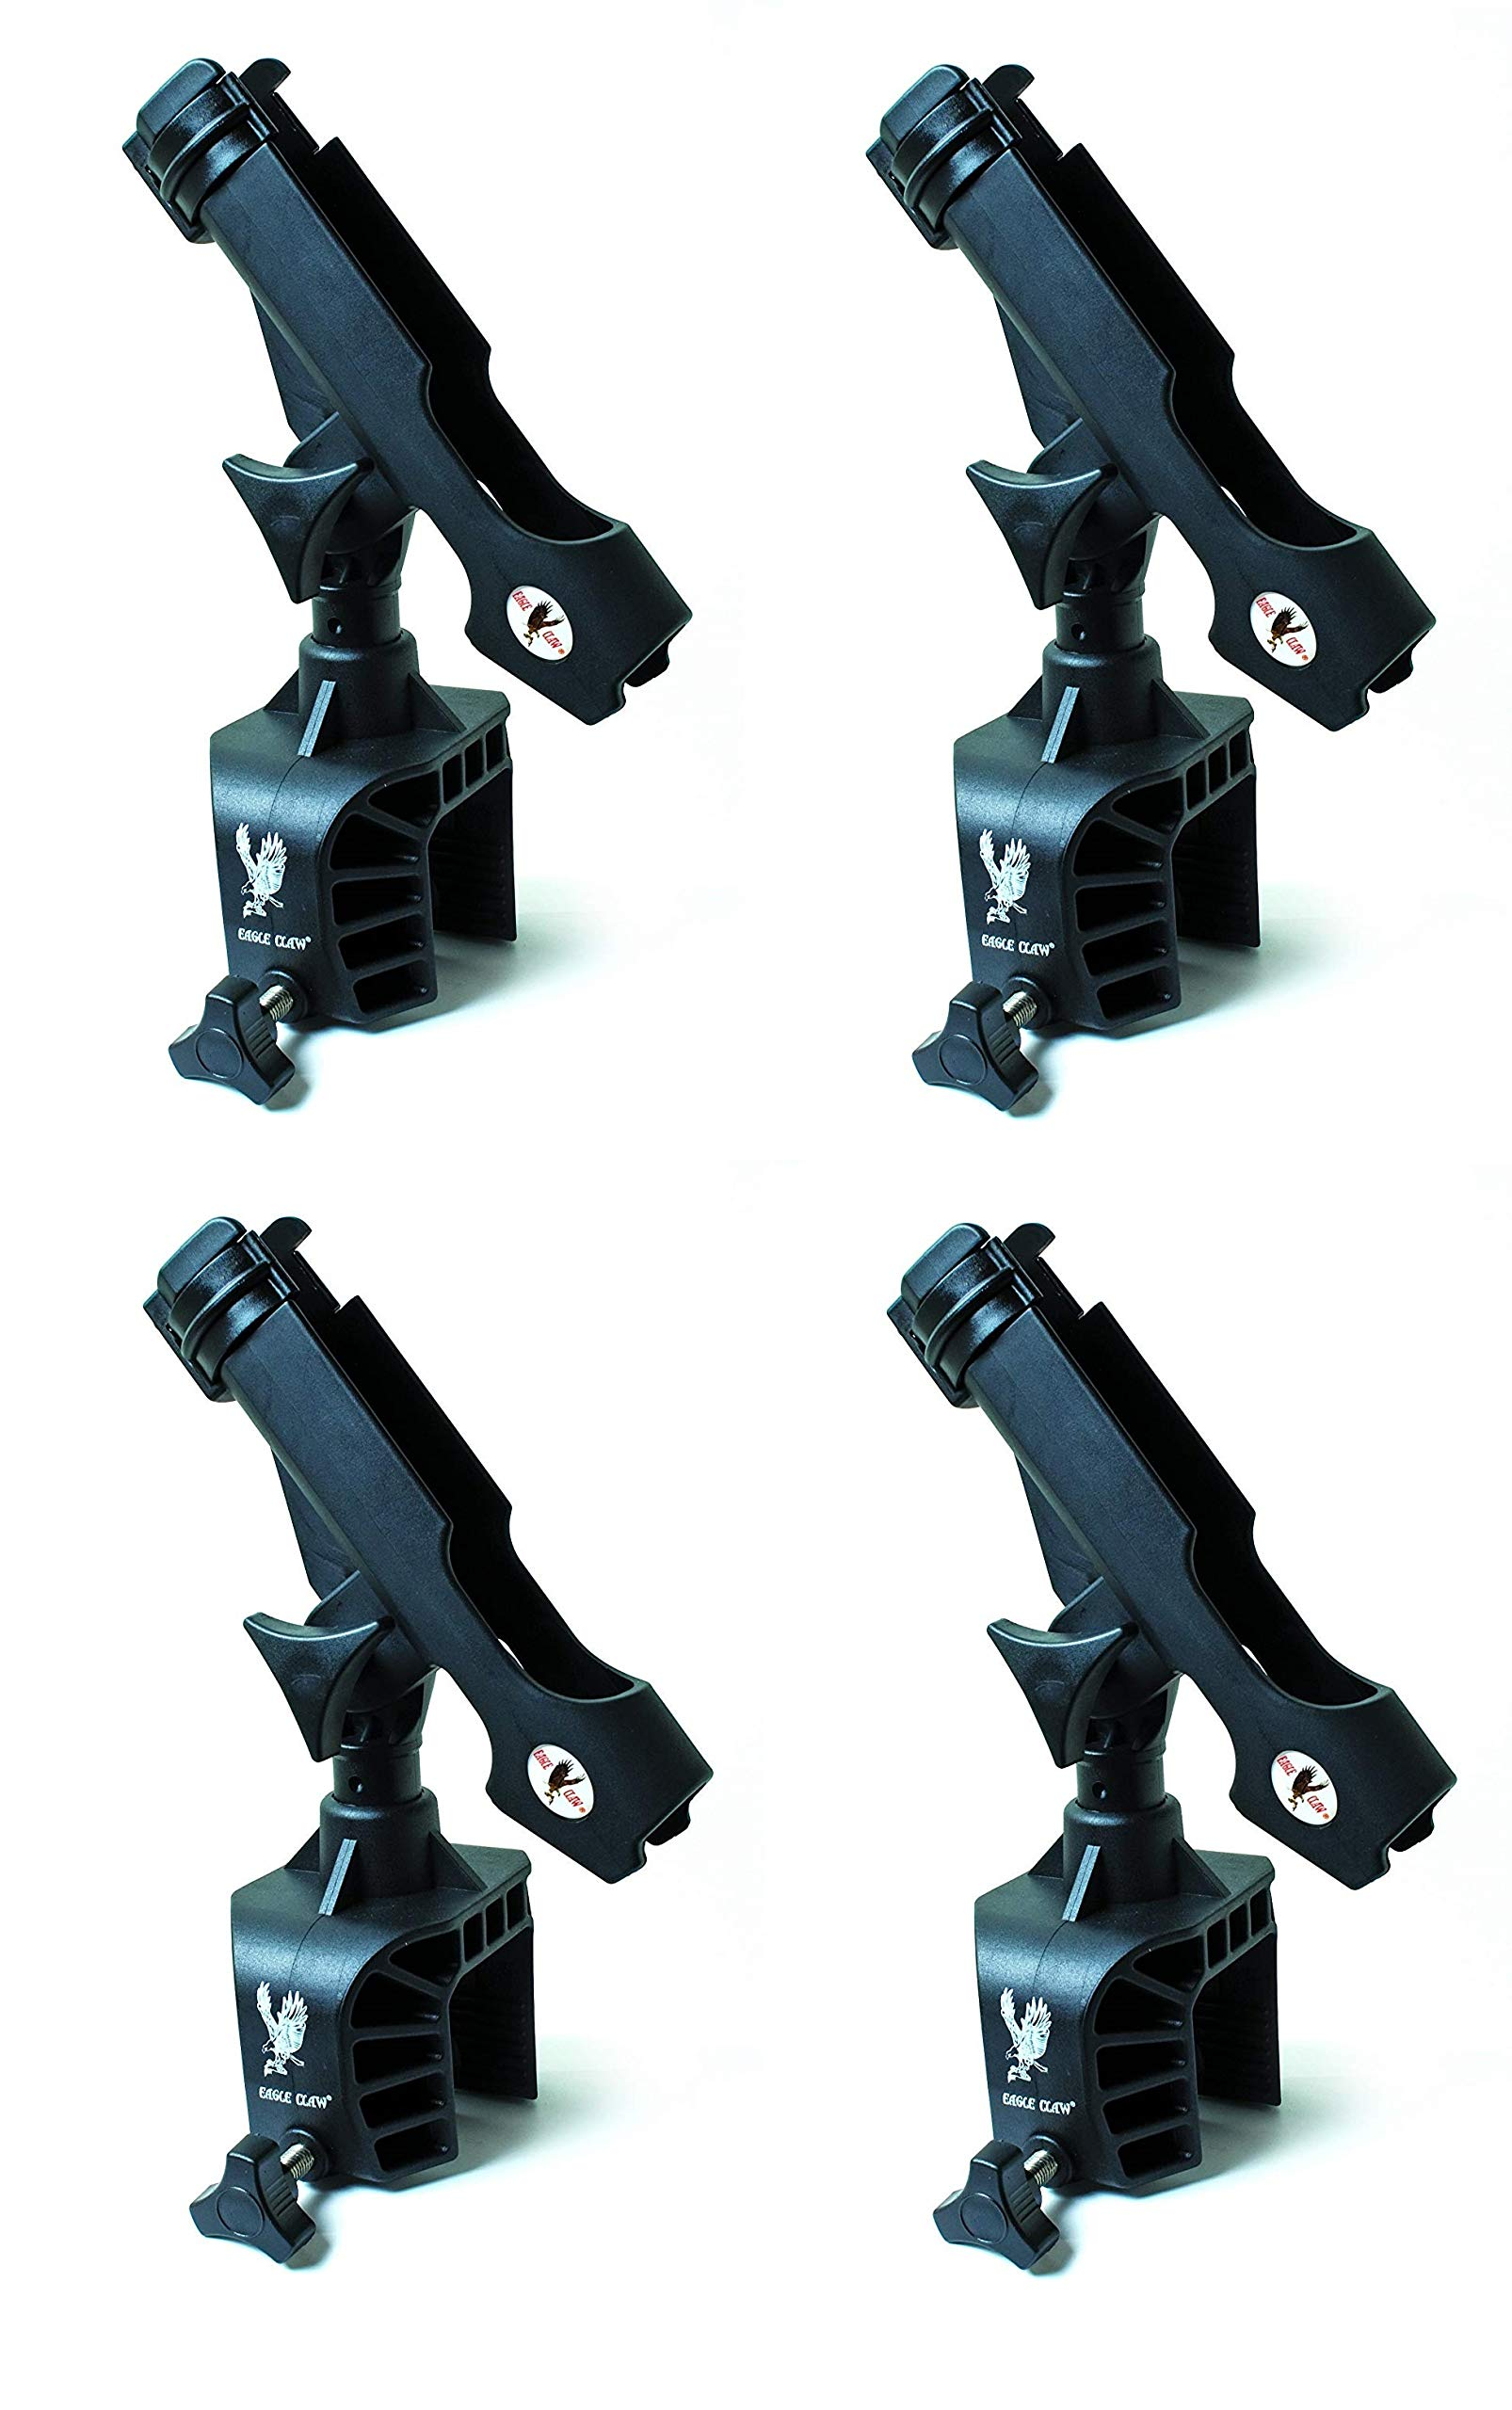 Eagle Claw AABRH Clamp-On Aluminum Boat Rod Holder, Black Finish (Pack of 4) by Eagle Claw